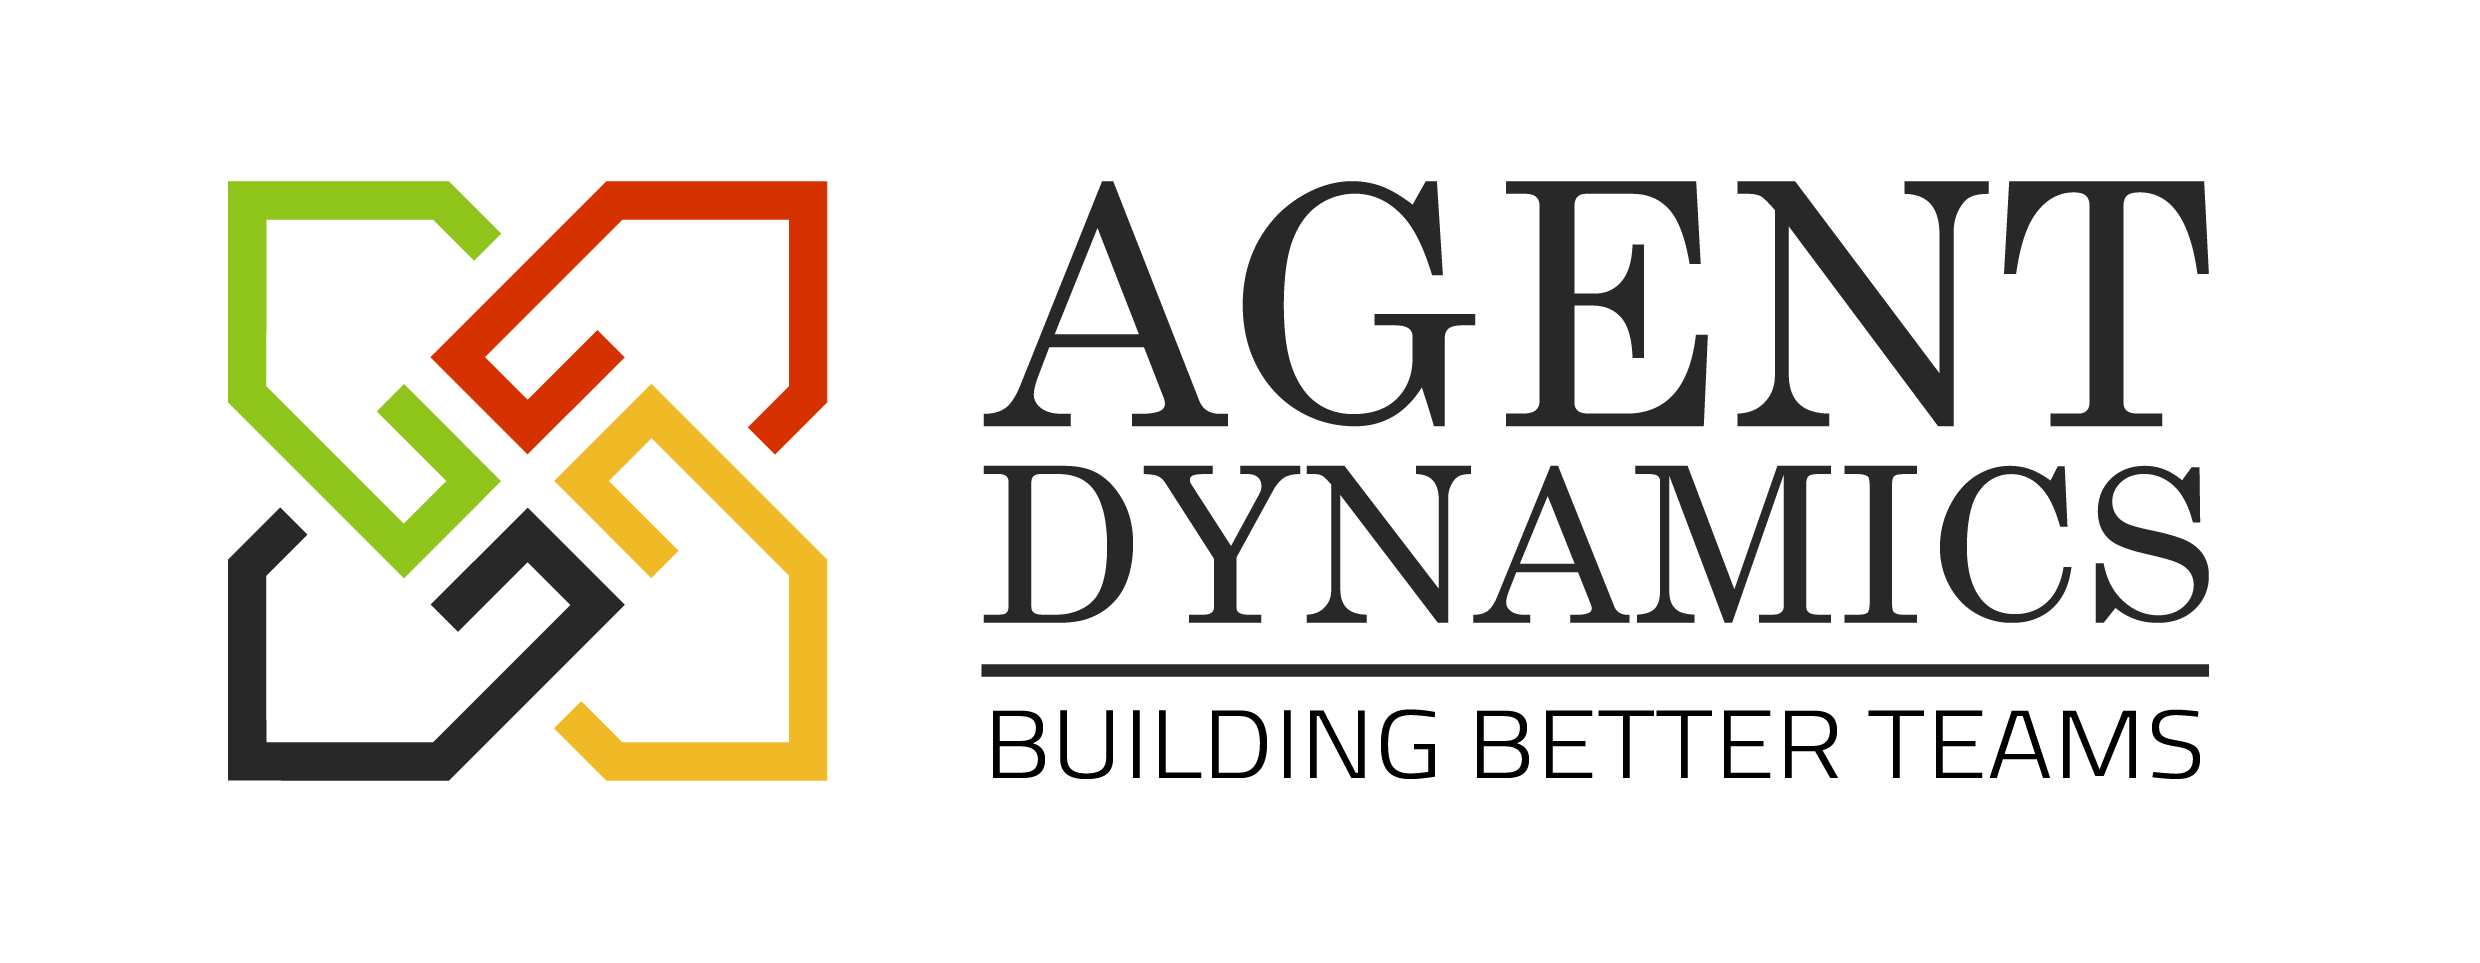 Agent Dynamics Logo with Tagline for website